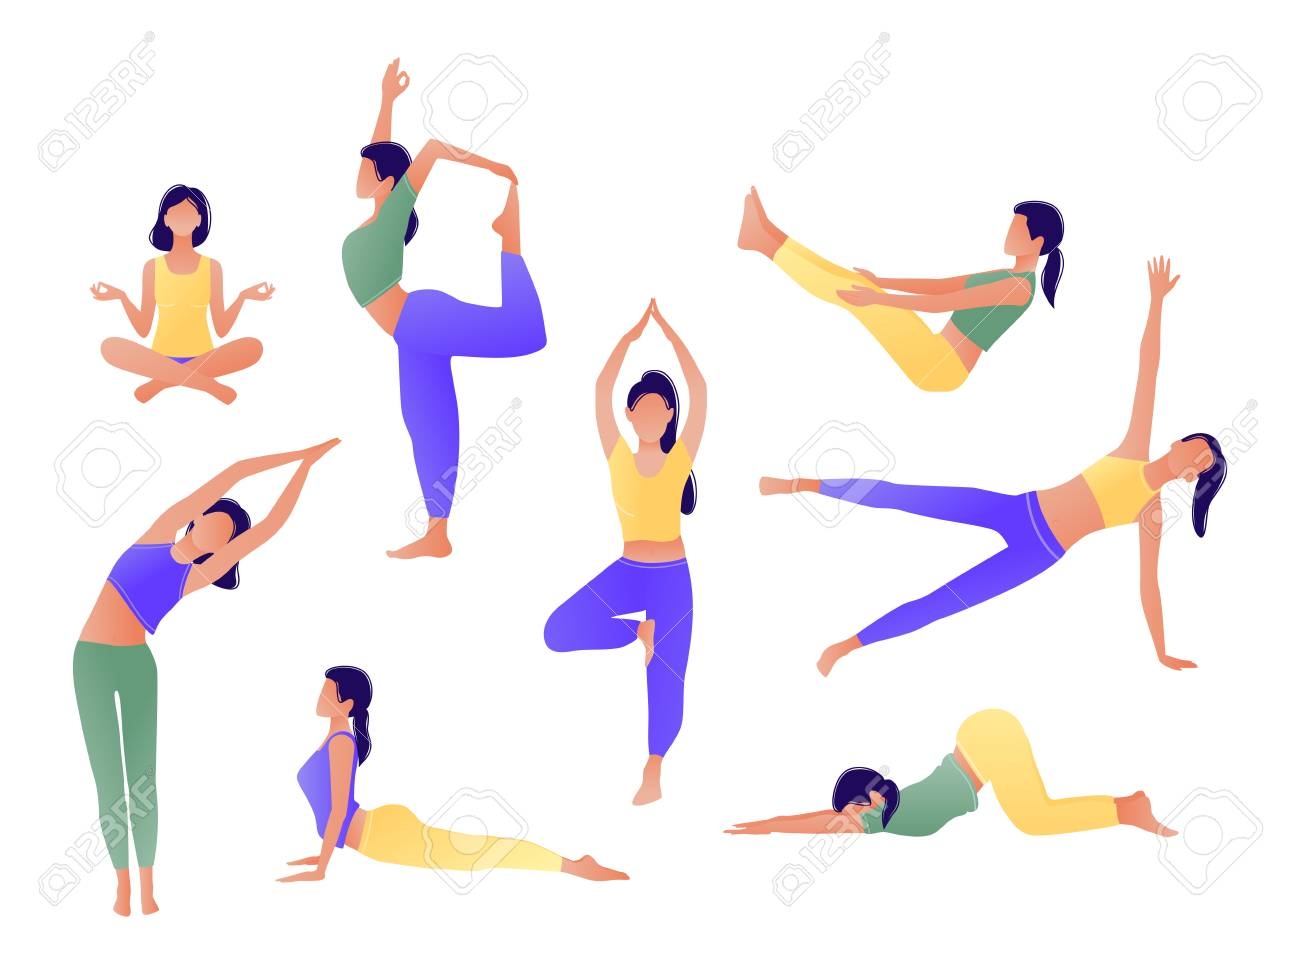 Yoga workout girl set. Women doing yoga exercises. Can be used for poster, banner, flyer, card, website. Warming up, stretching. Vector illustration. Green yellow violet - 117872202